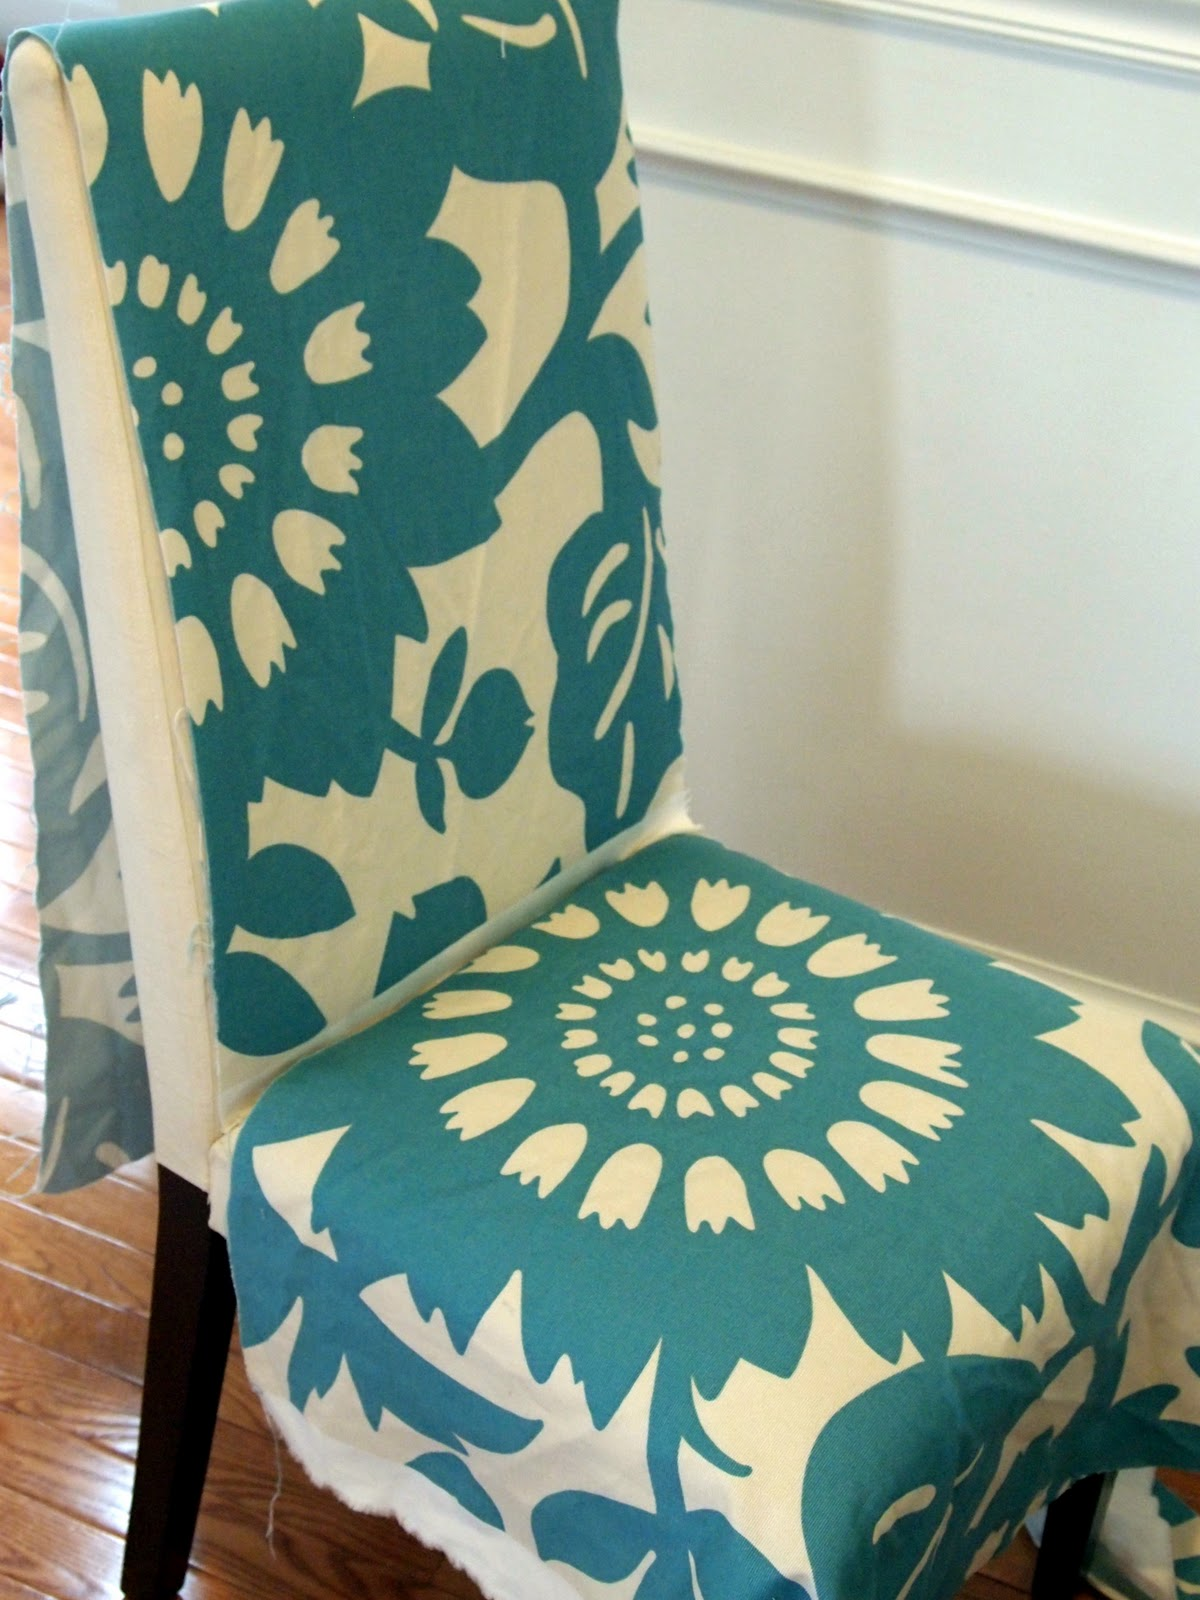 Fabric Chair Covers Loveyourroom My Morning Slip Cover Chair Project Using